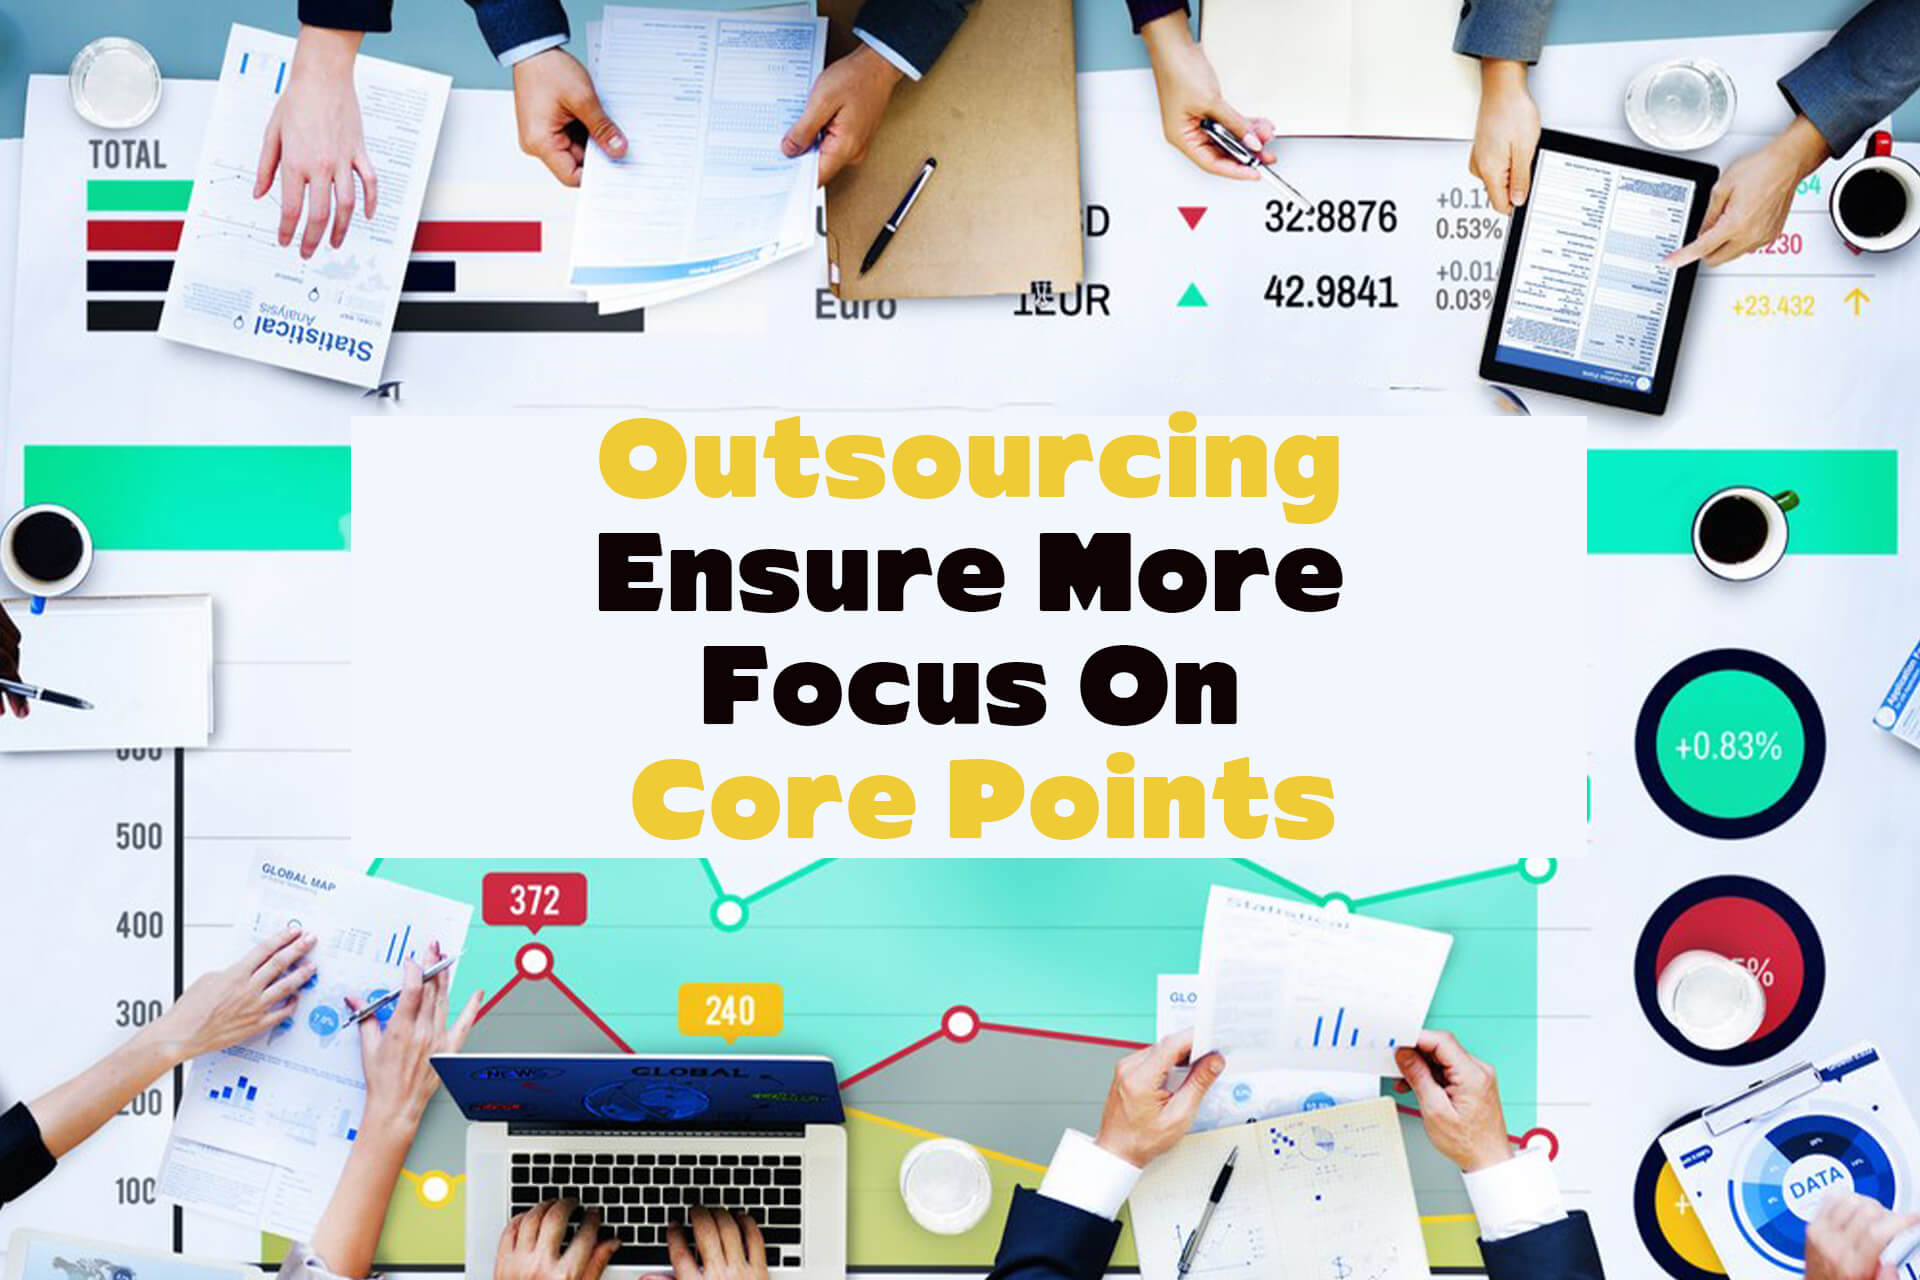 Outsourcing ensure more focus on core points